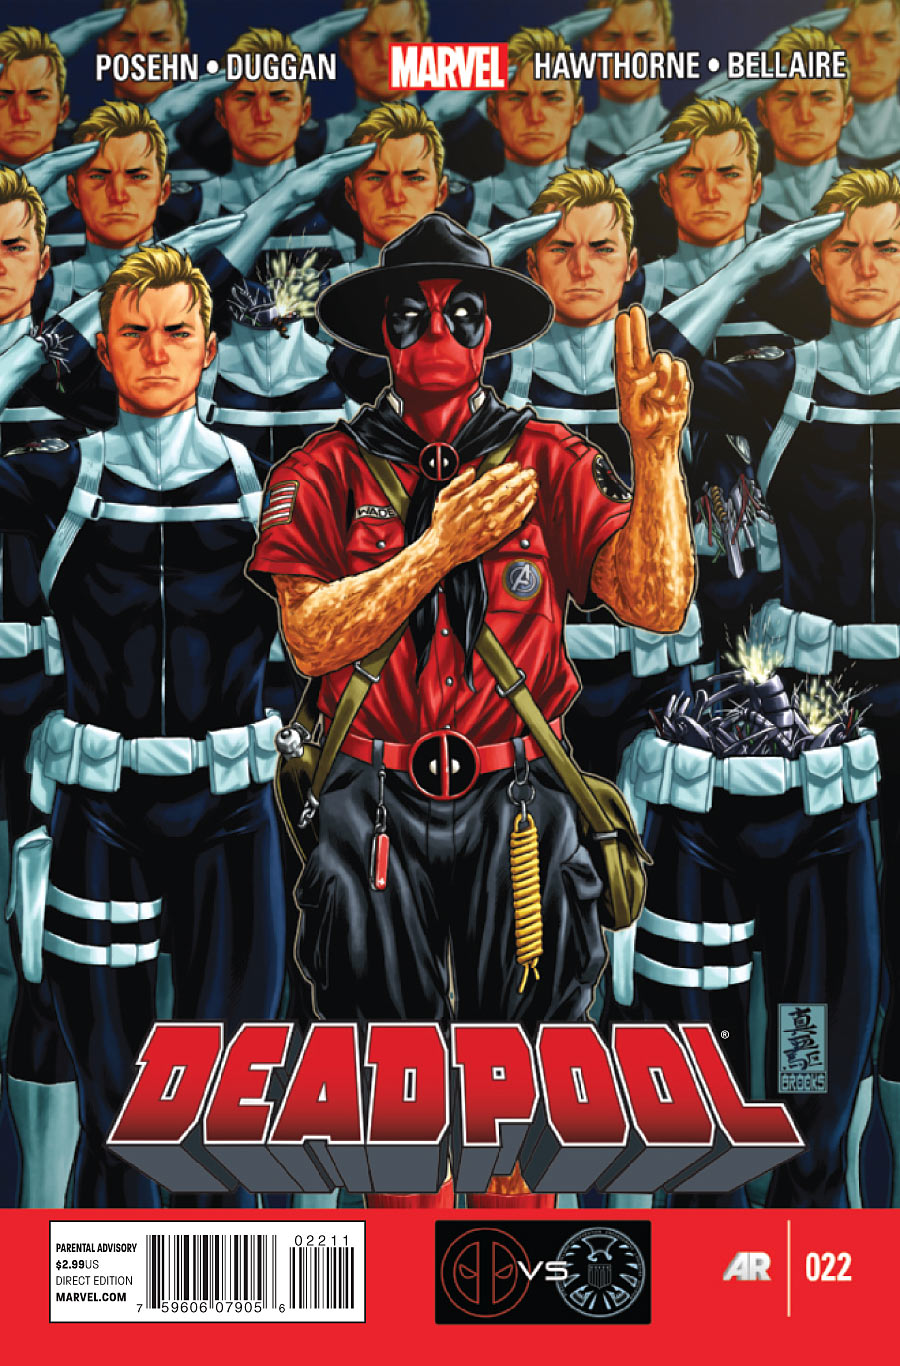 Deadpool Vol. 3 #22